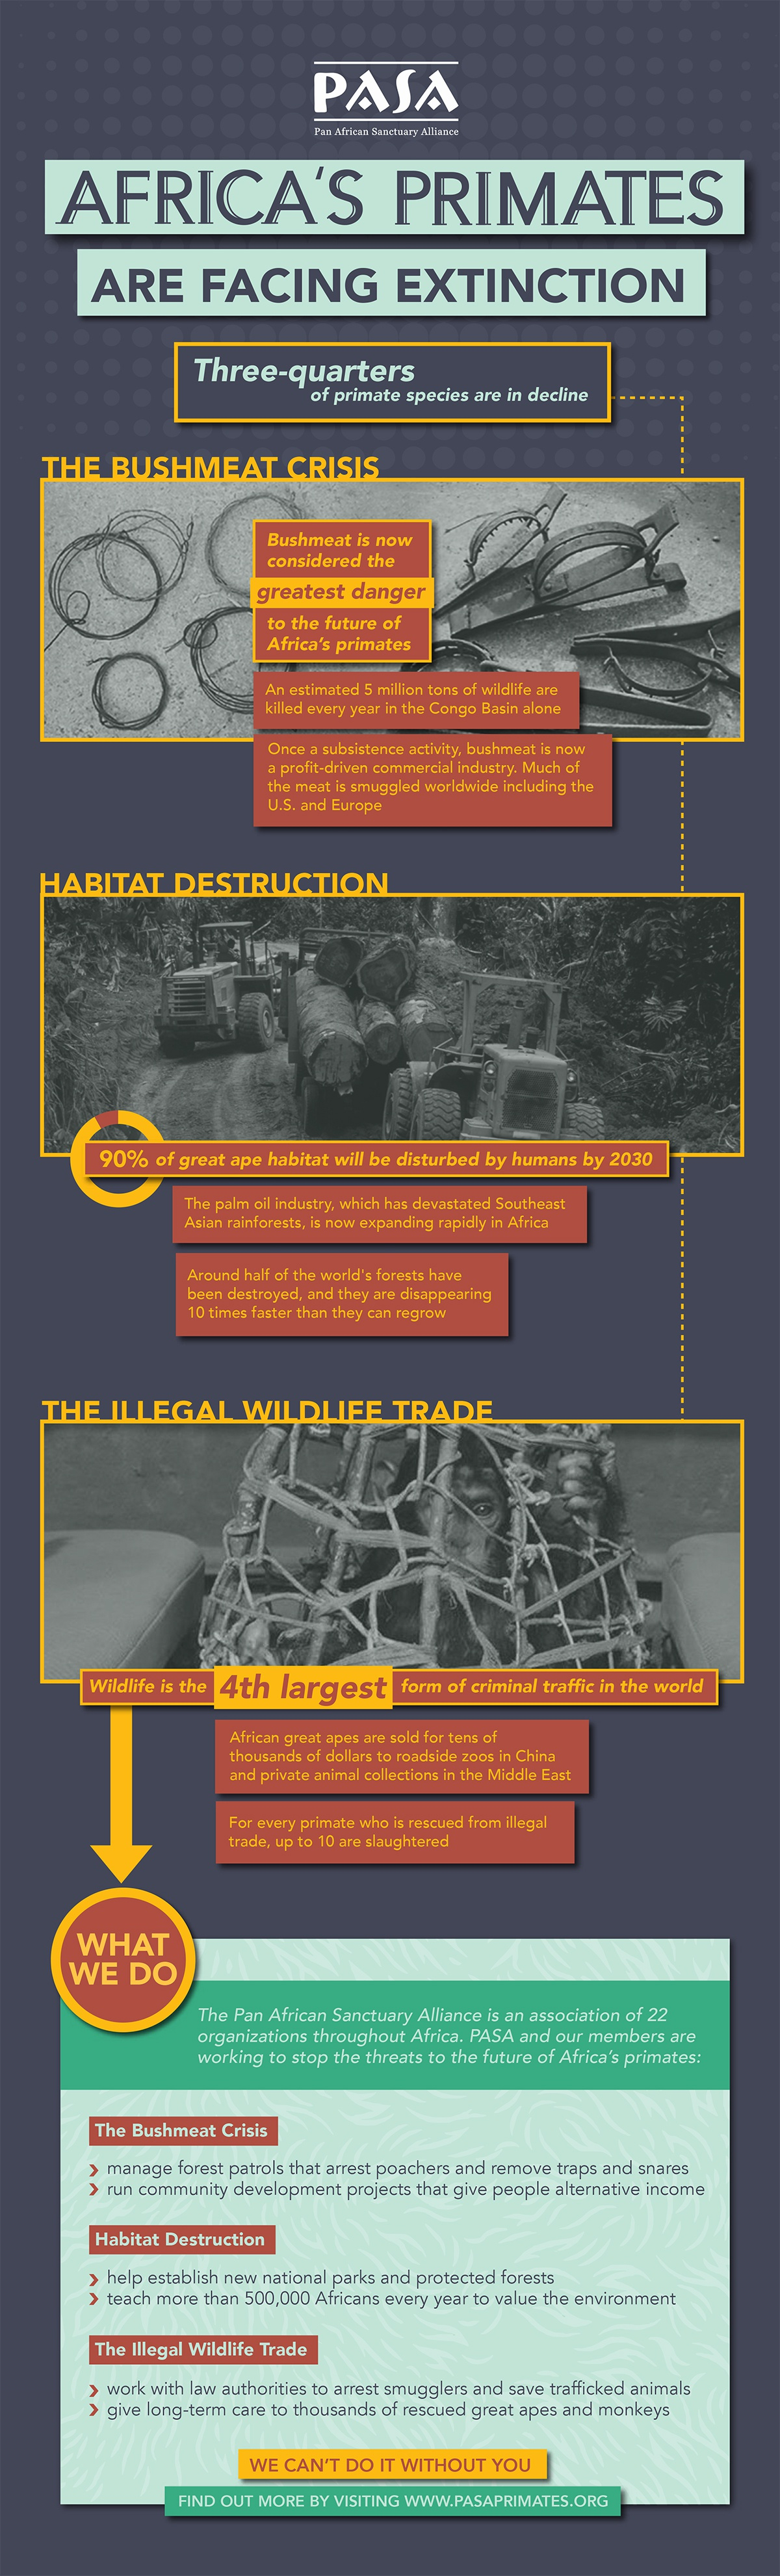 Infographic / Poster for Risk of African Primate Extinction. The bushmeat crisis, habitat destruction, and illegal wildlife trade.